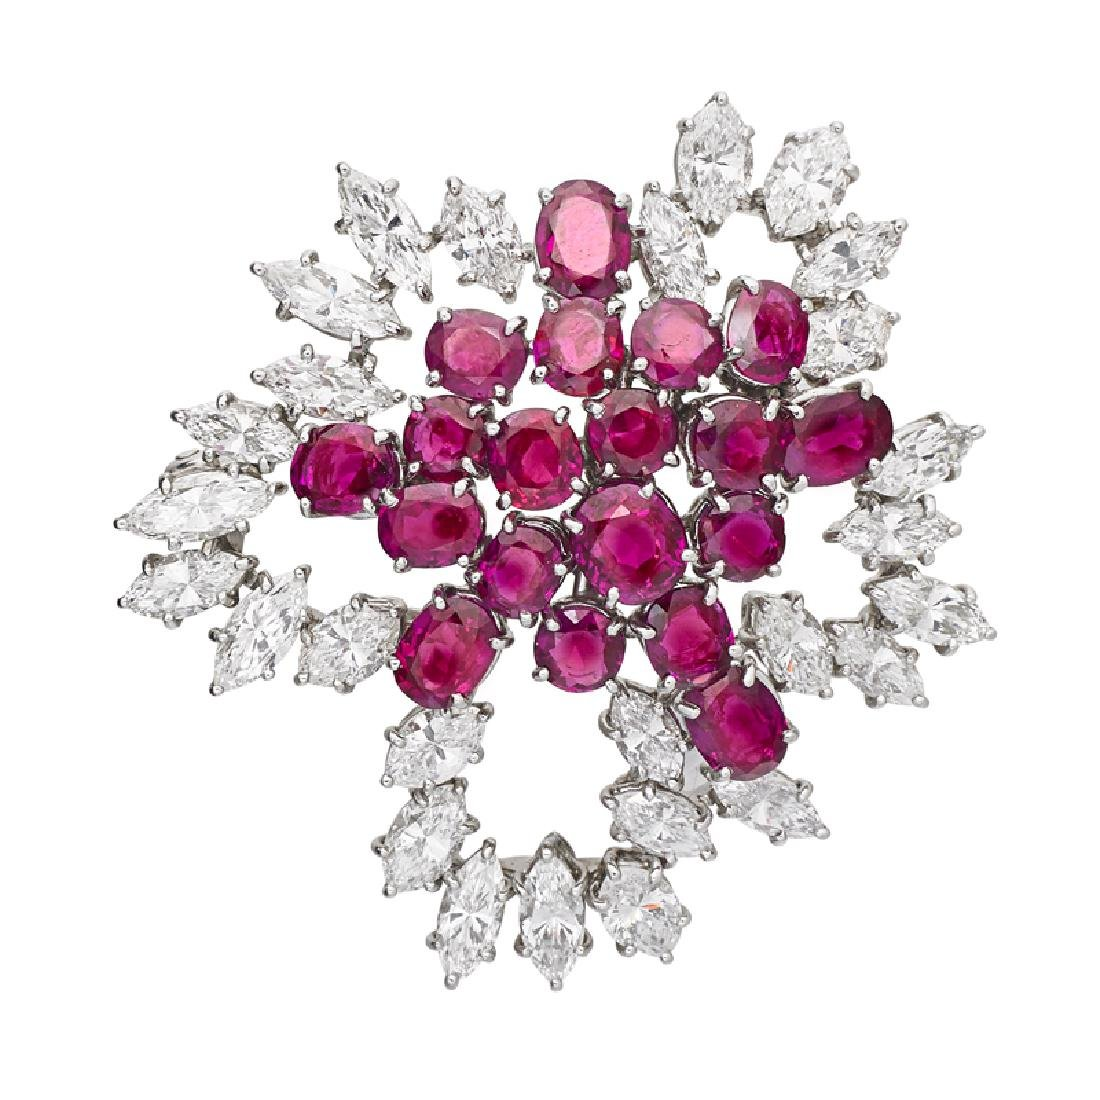 BURMA RUBY, DIAMOND & PLATINUM BROOCH